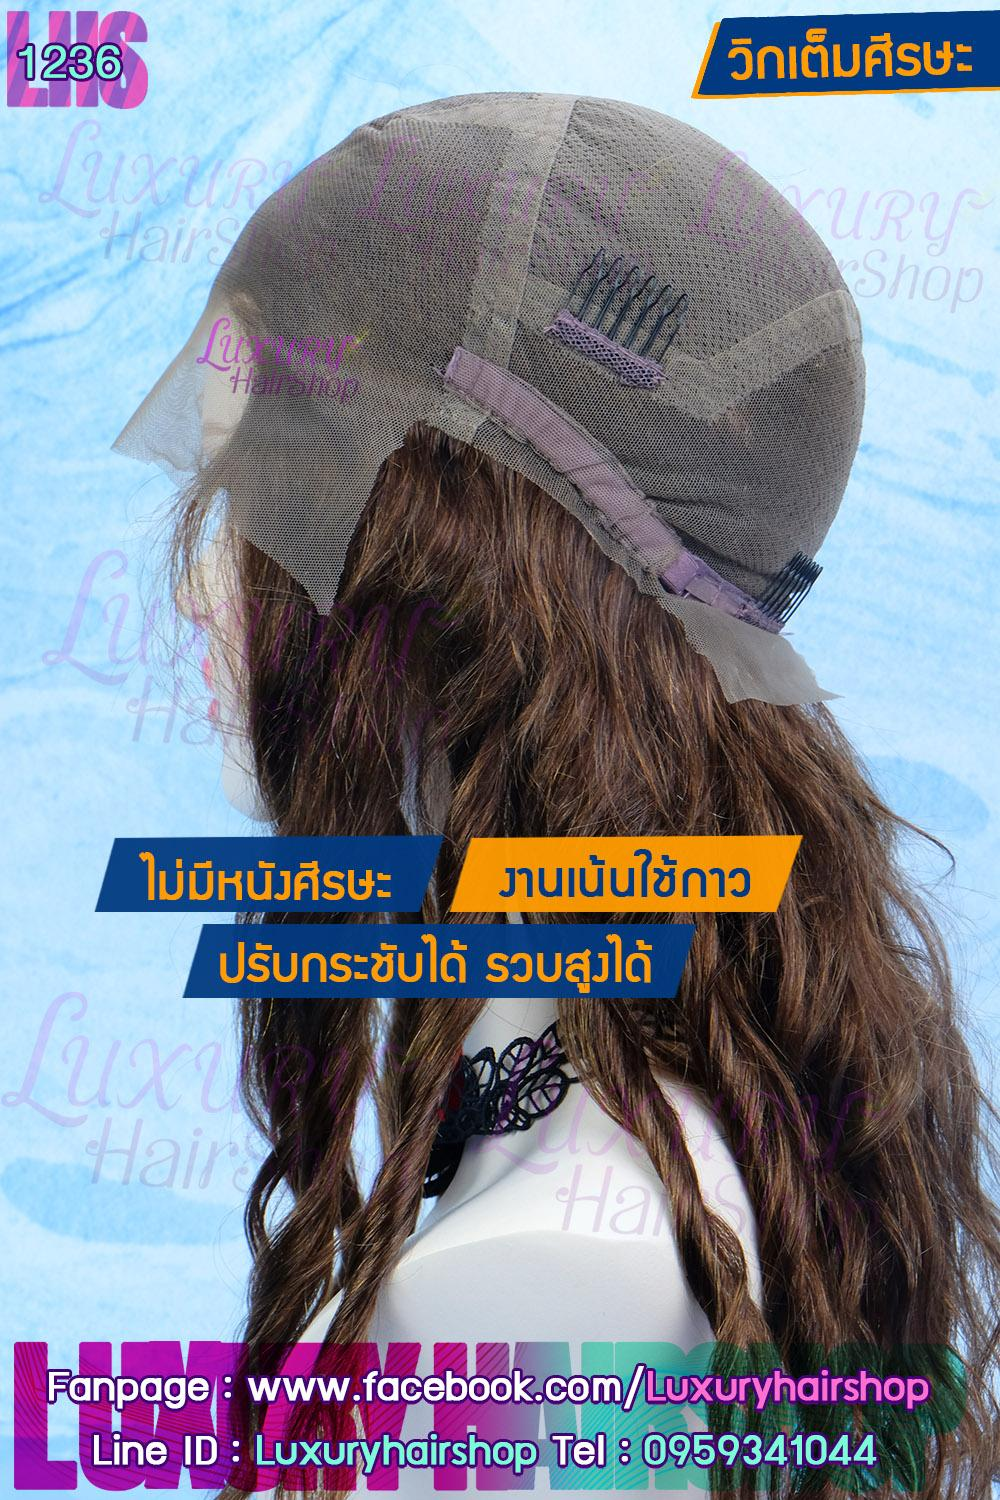 Order's Review คุณ สมใจ